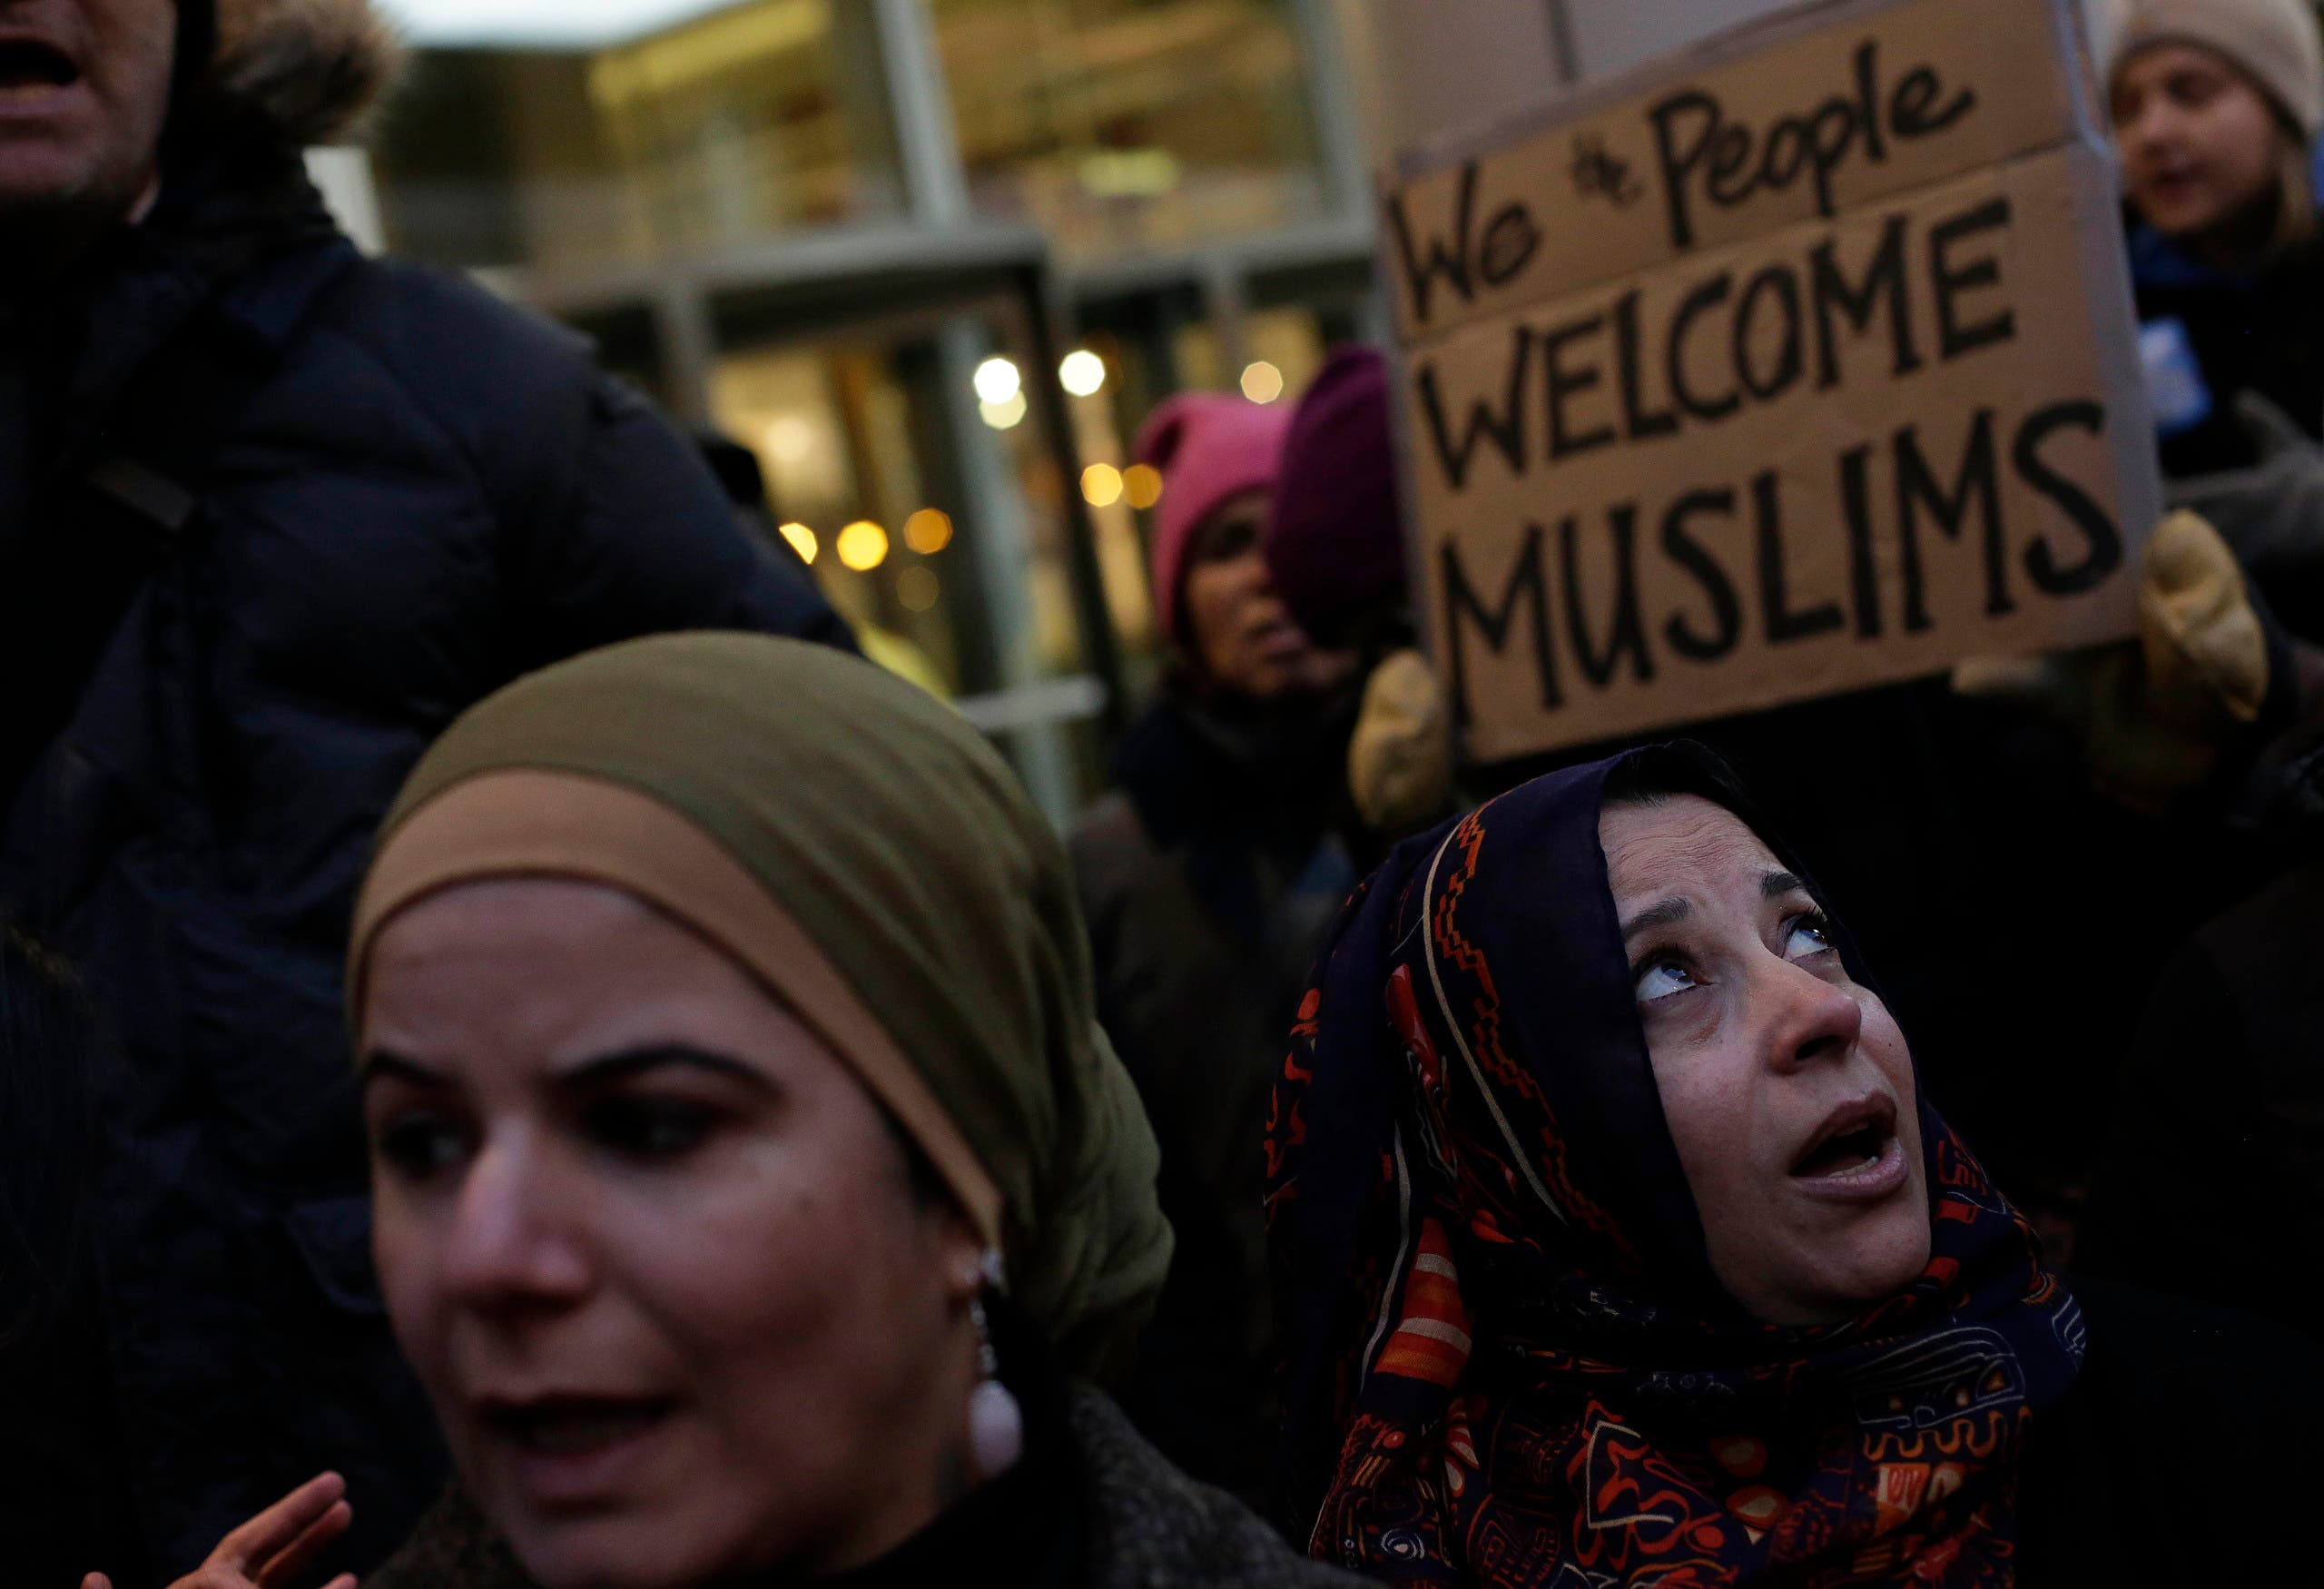 Demonstrators protest President Donald Trump's executive immigration ban on February 1, 2017 in Chicago, Illinois. afp